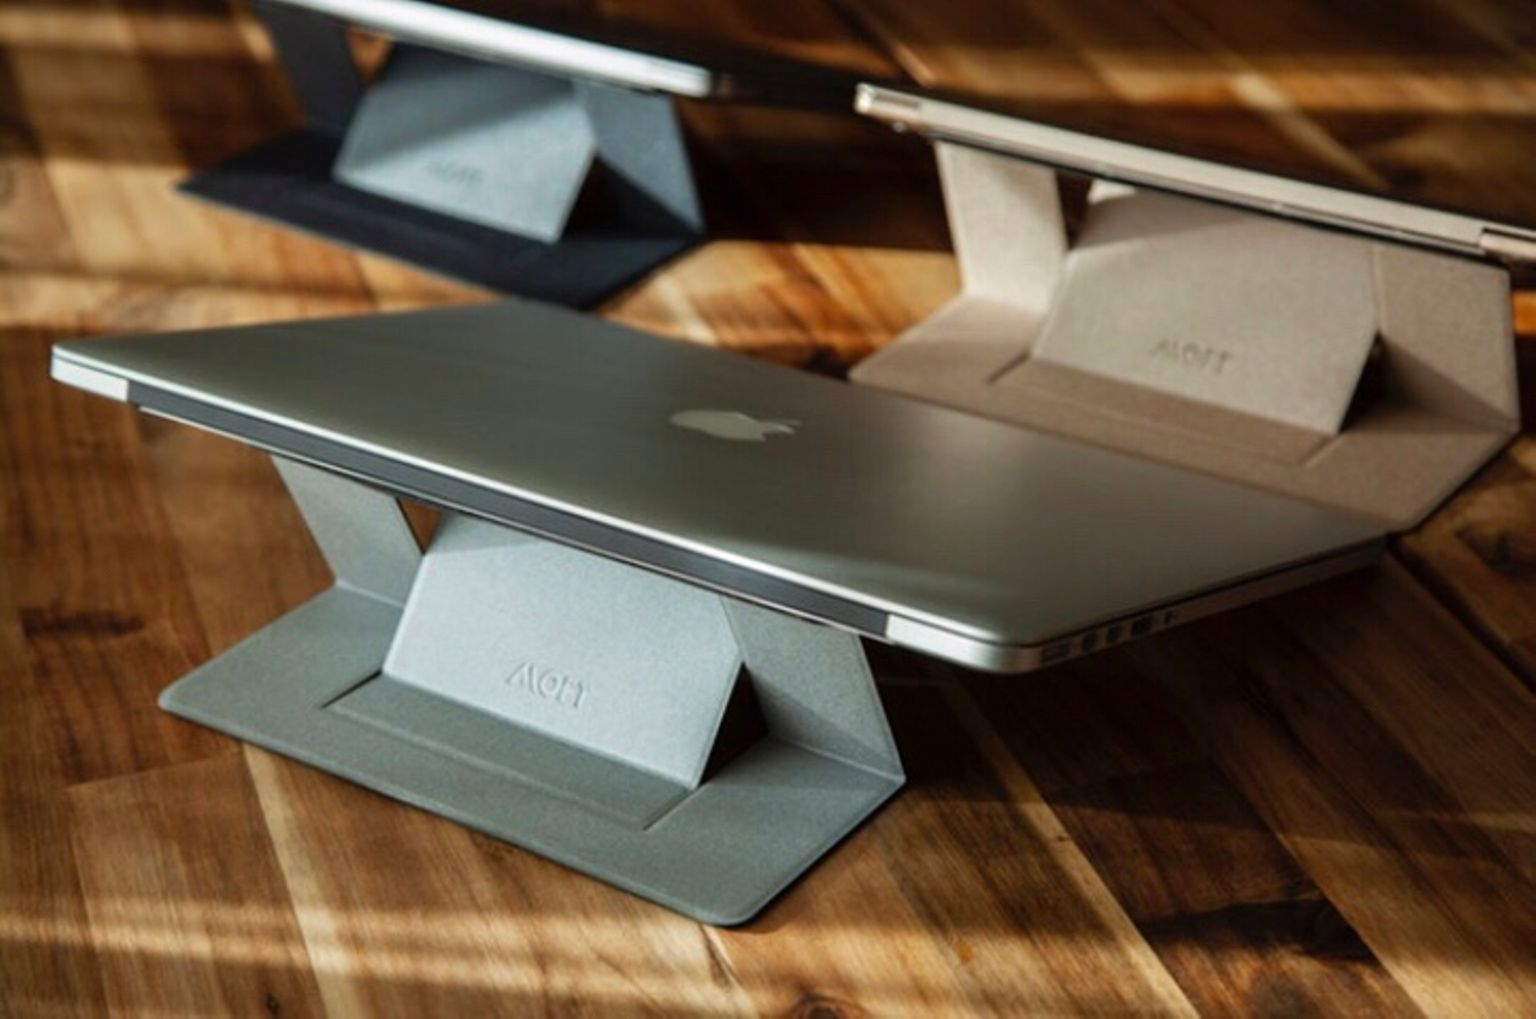 Best Buy Laptop Stand of MOFT for Sale